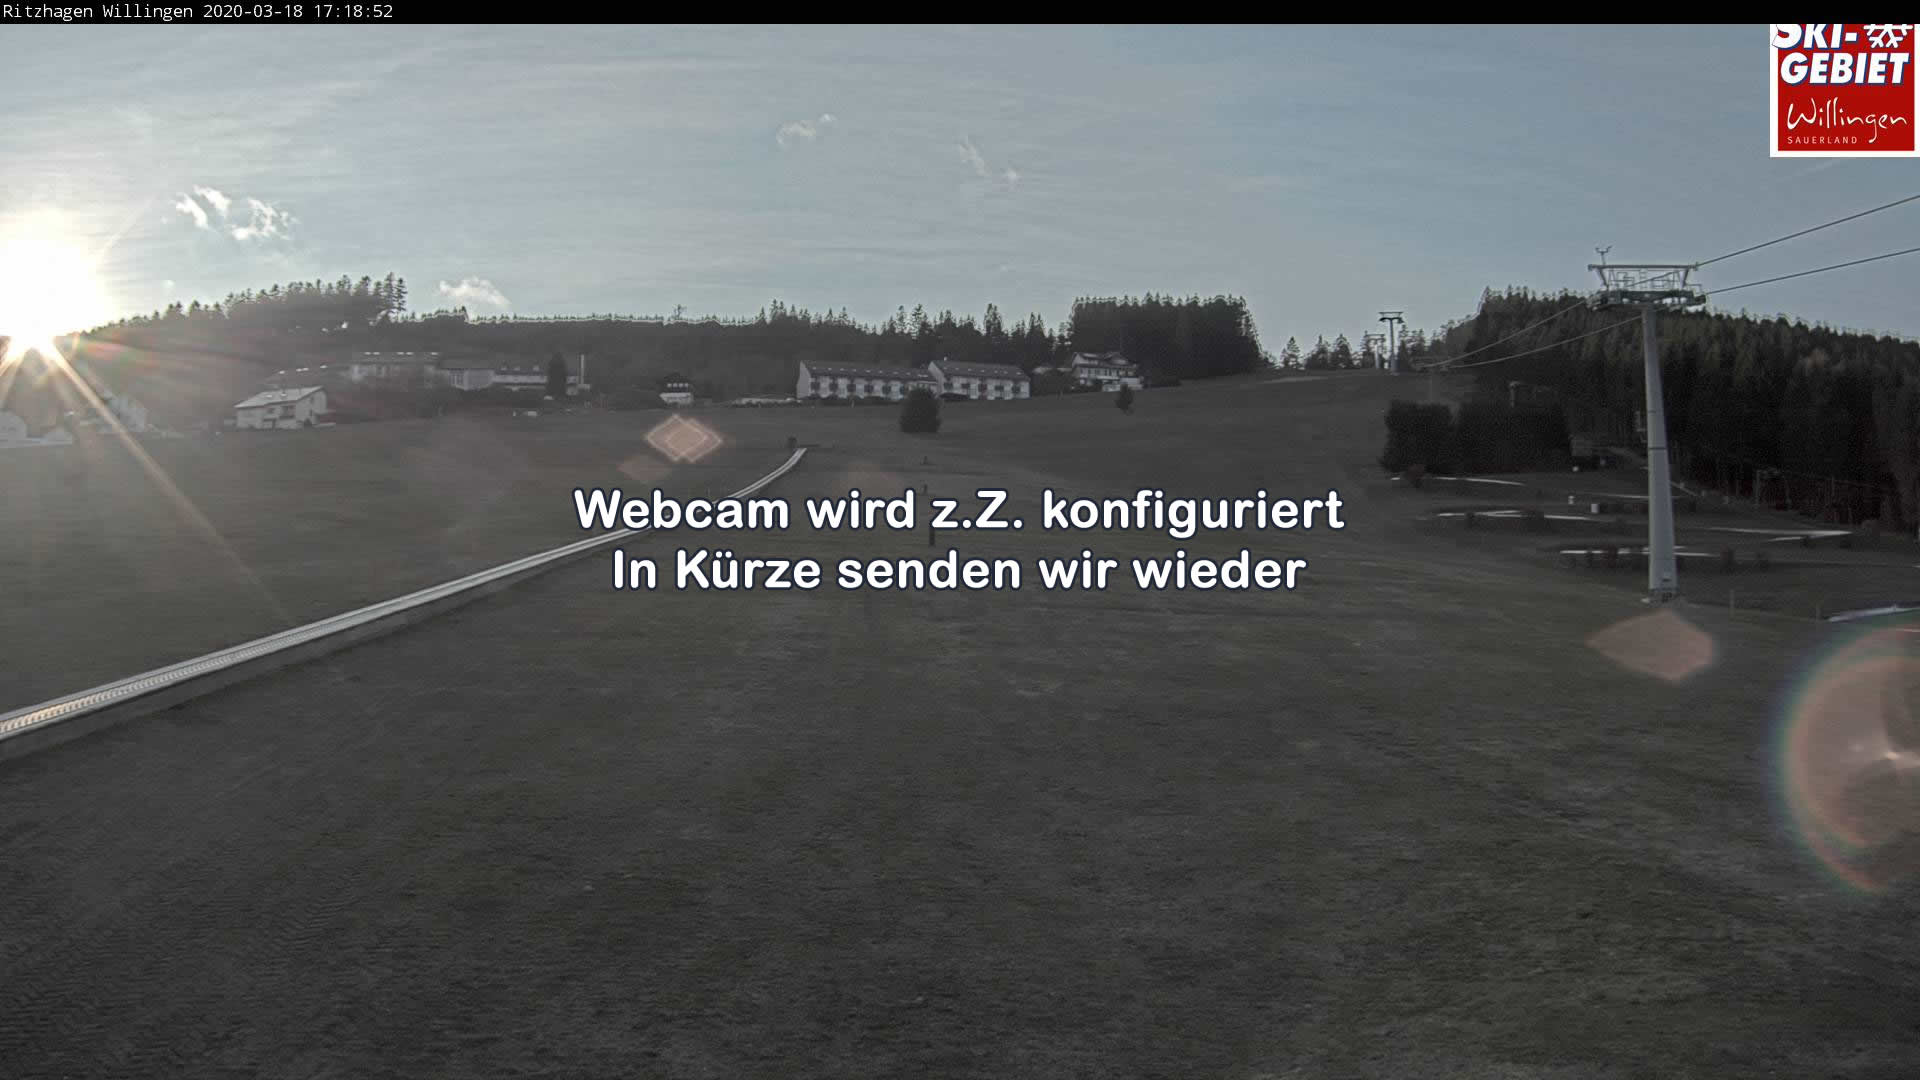 Ski-region Willingen - webcam 7